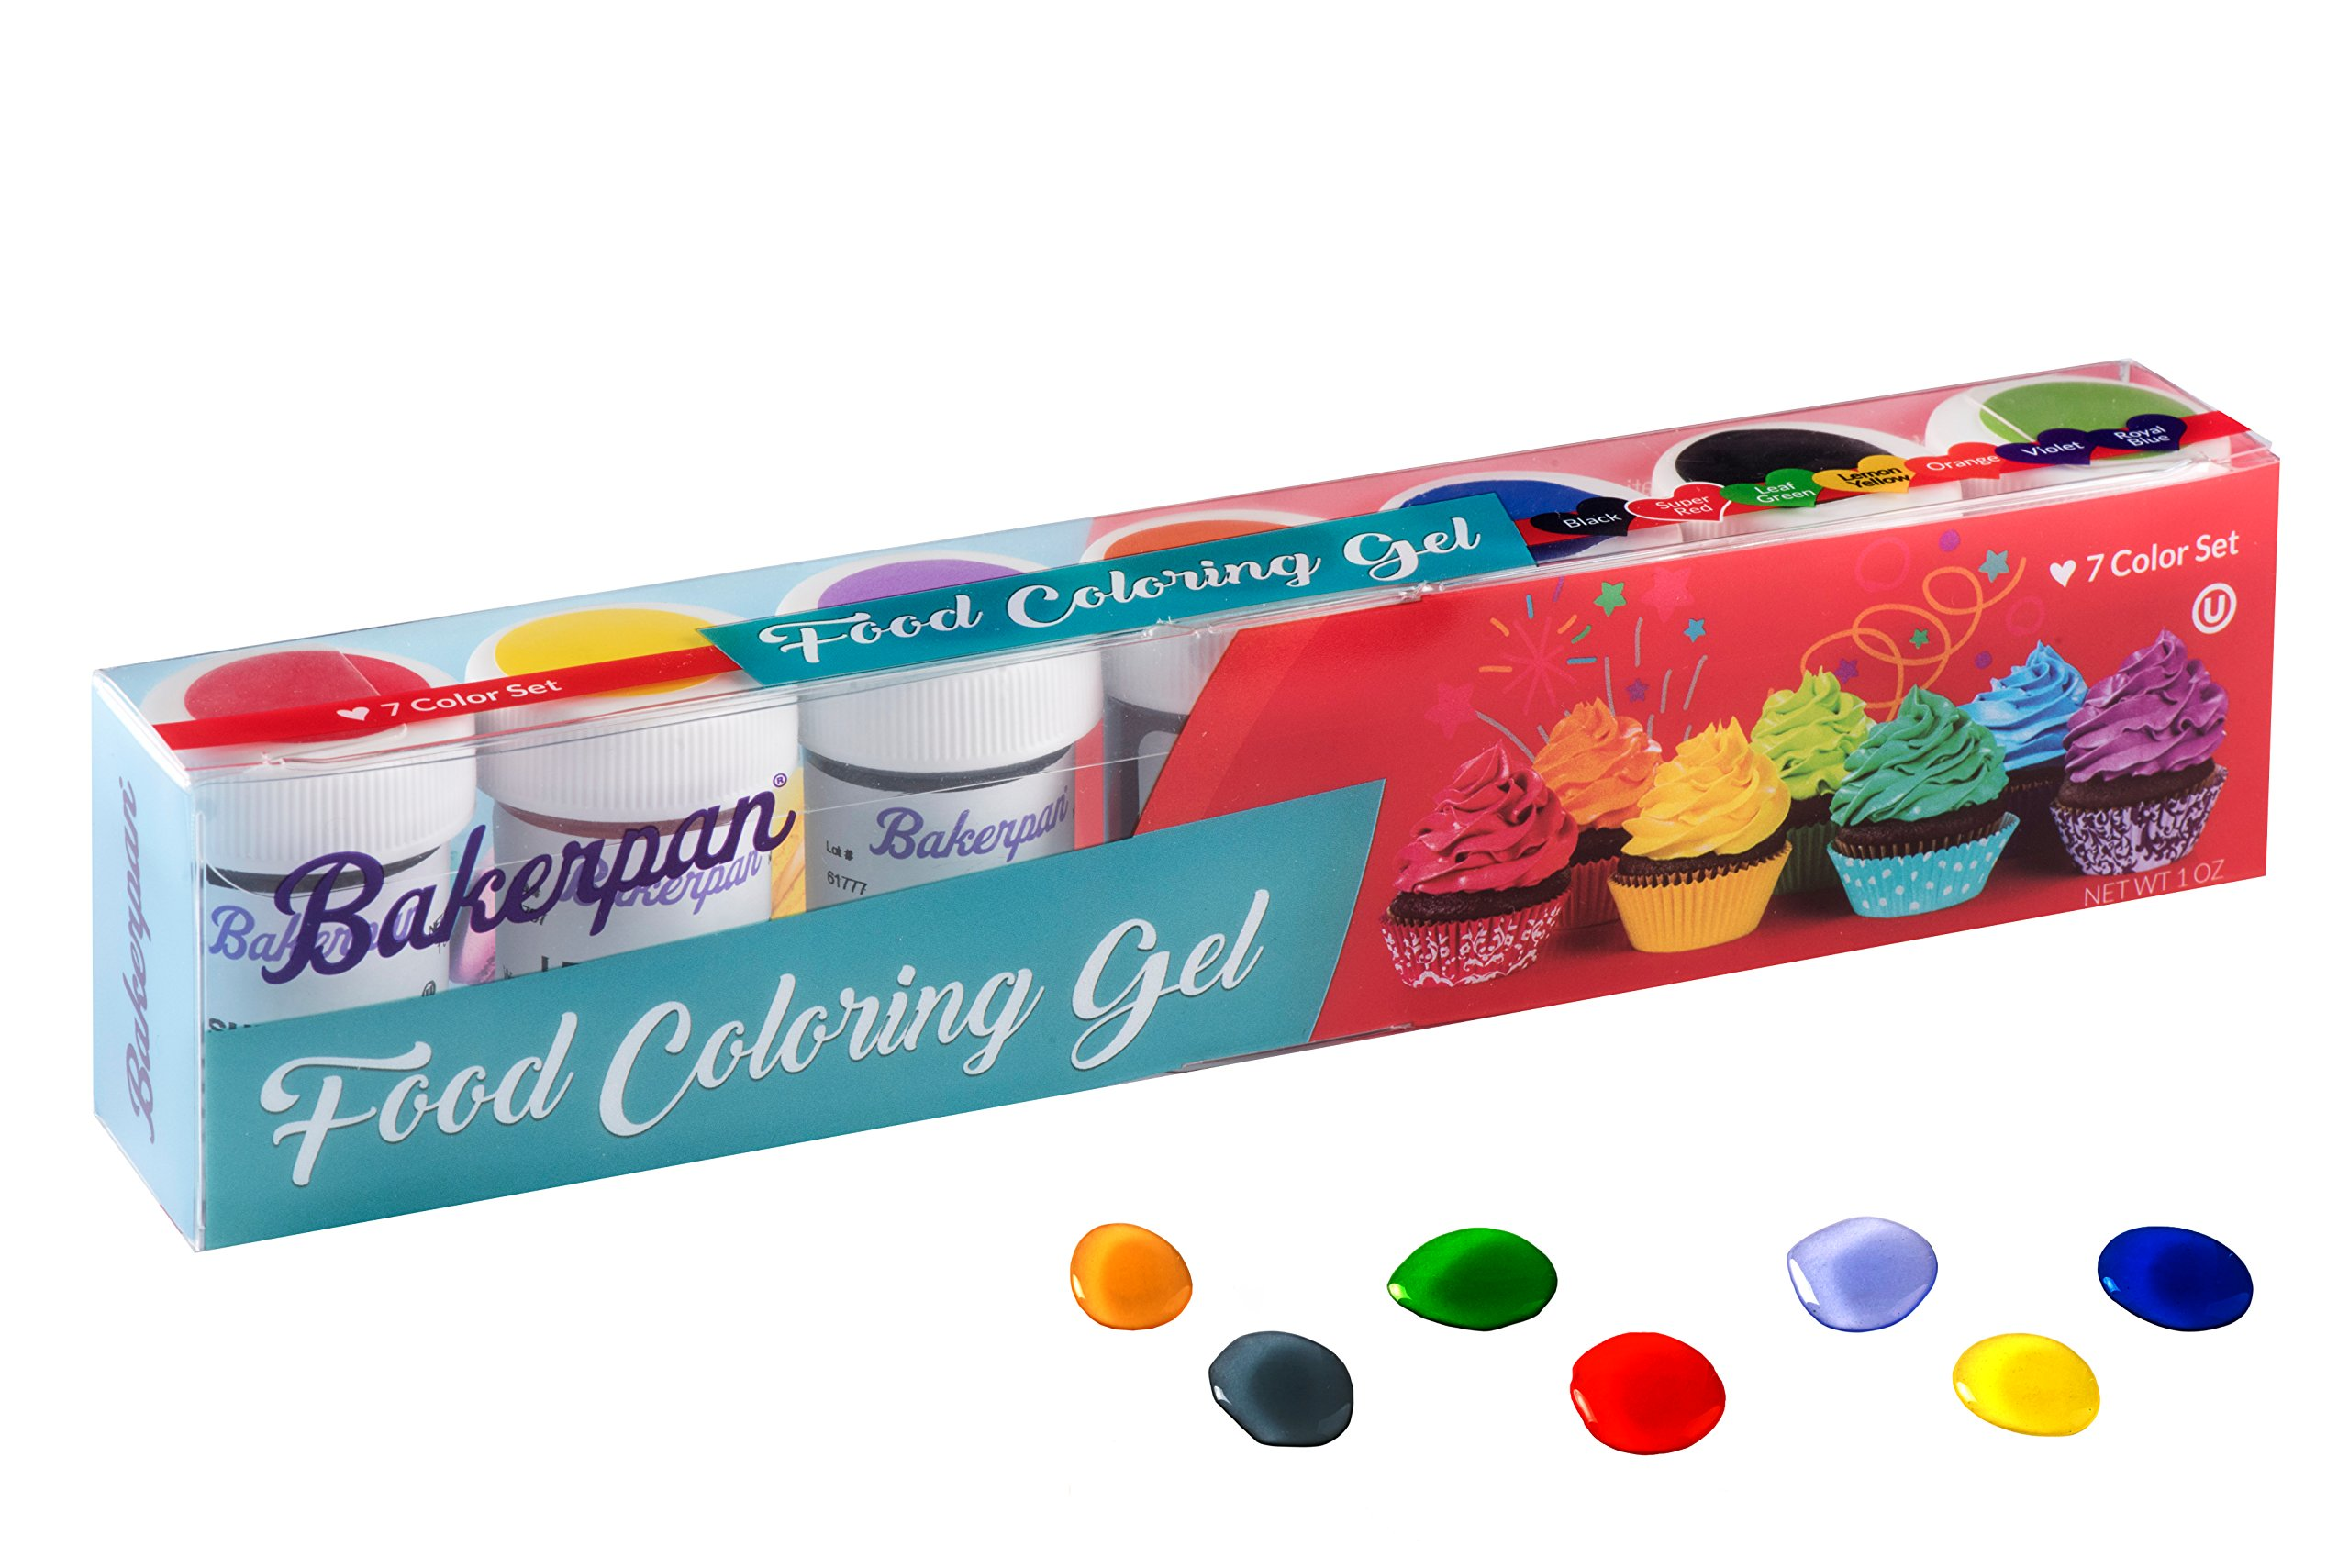 Bakerpan Food Coloring Gel Concentrate 1 oz Jars, For Icing, Cakes, Set of 7 Colors by Bakerpan